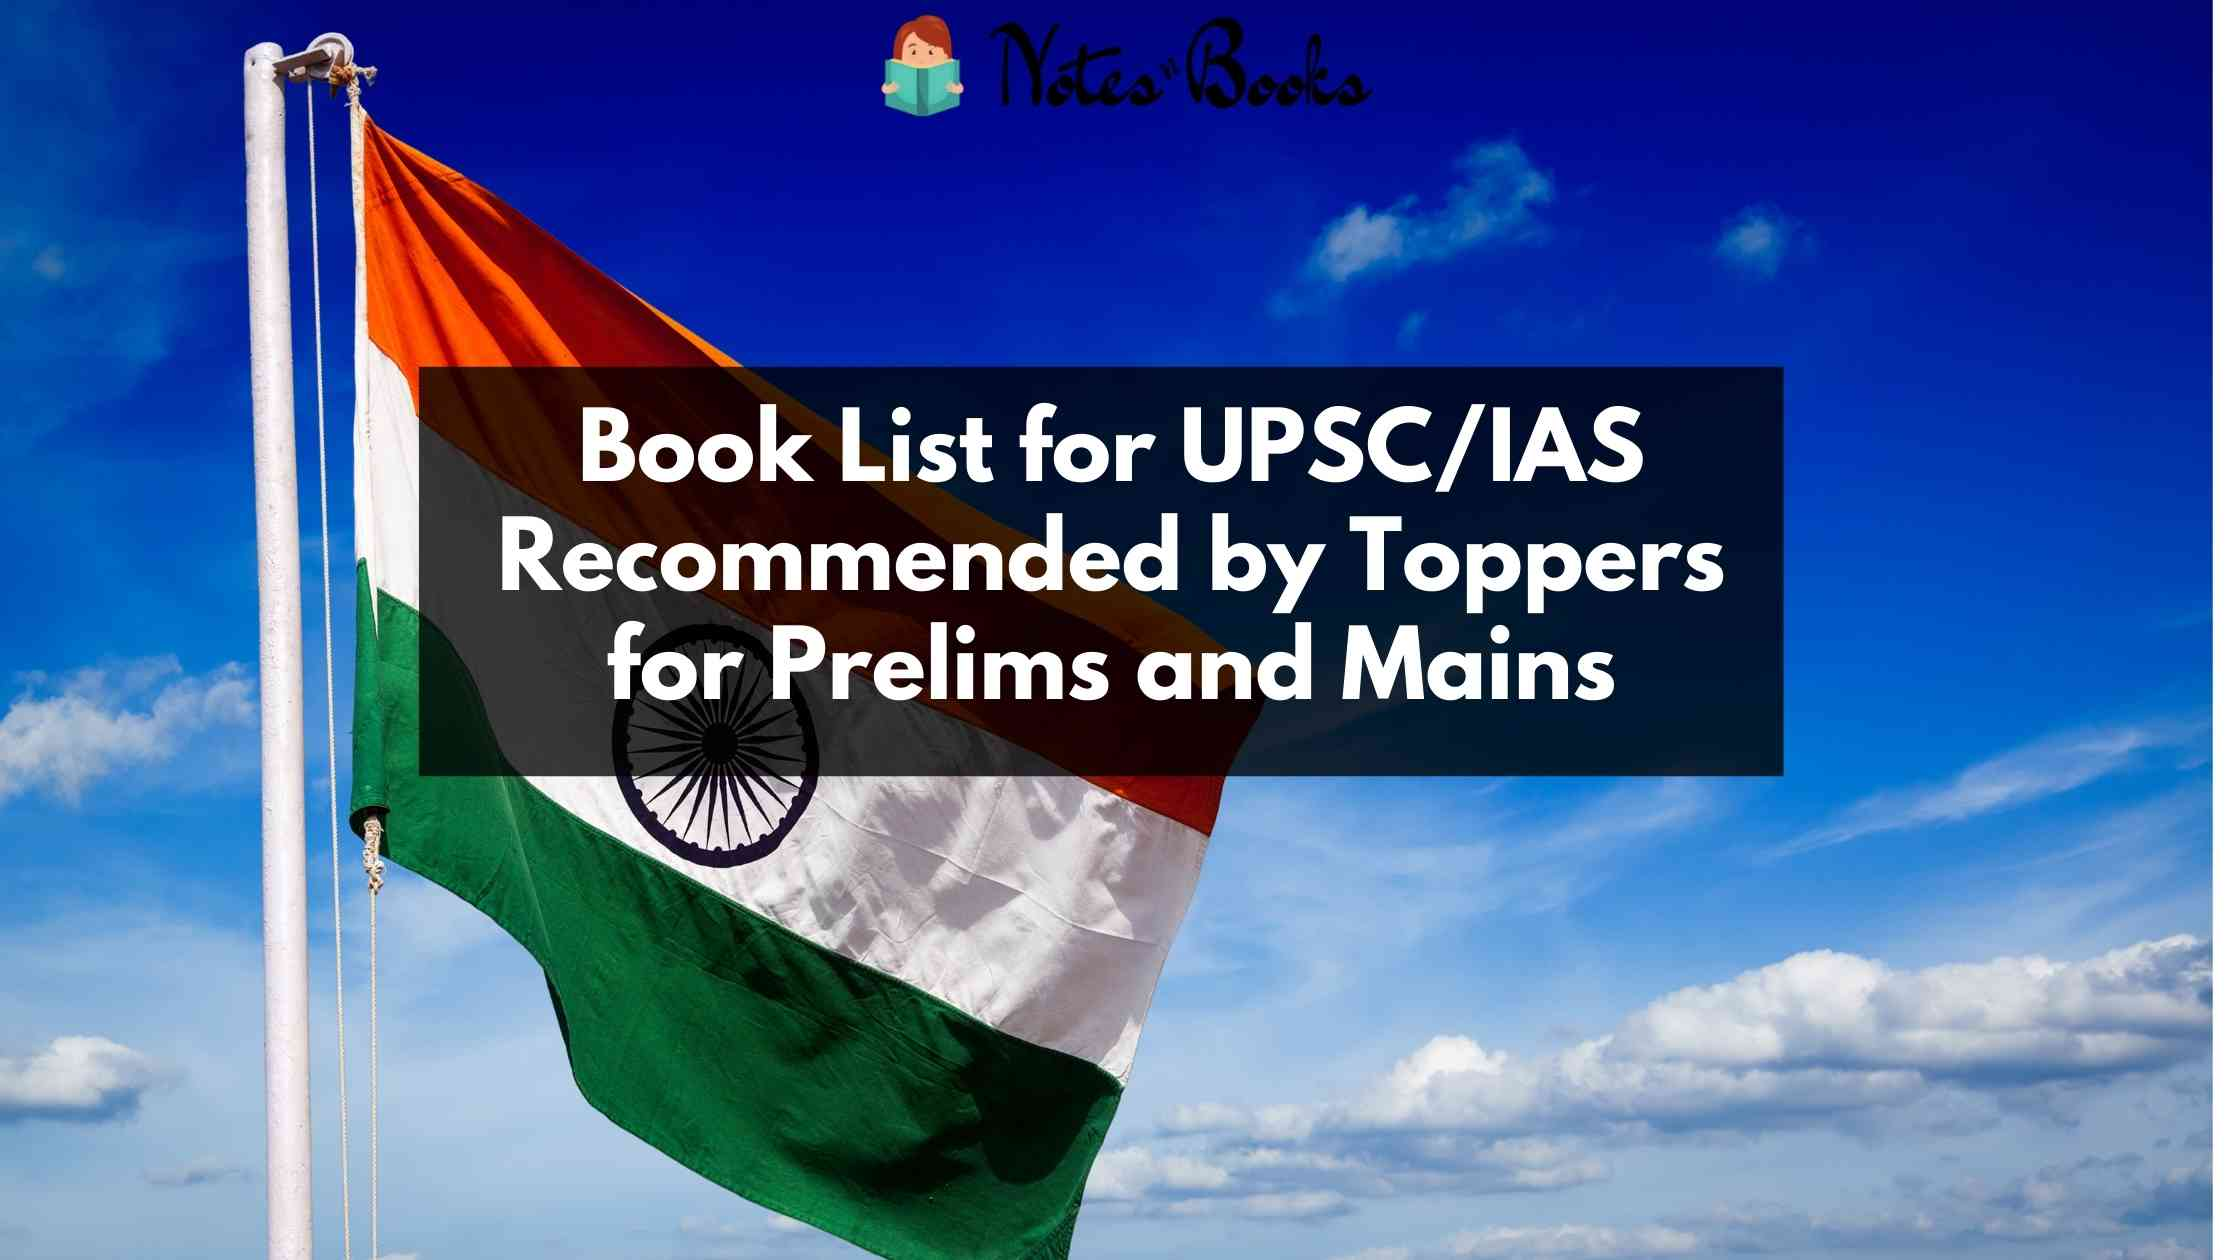 UPSC IAS book list by toppers